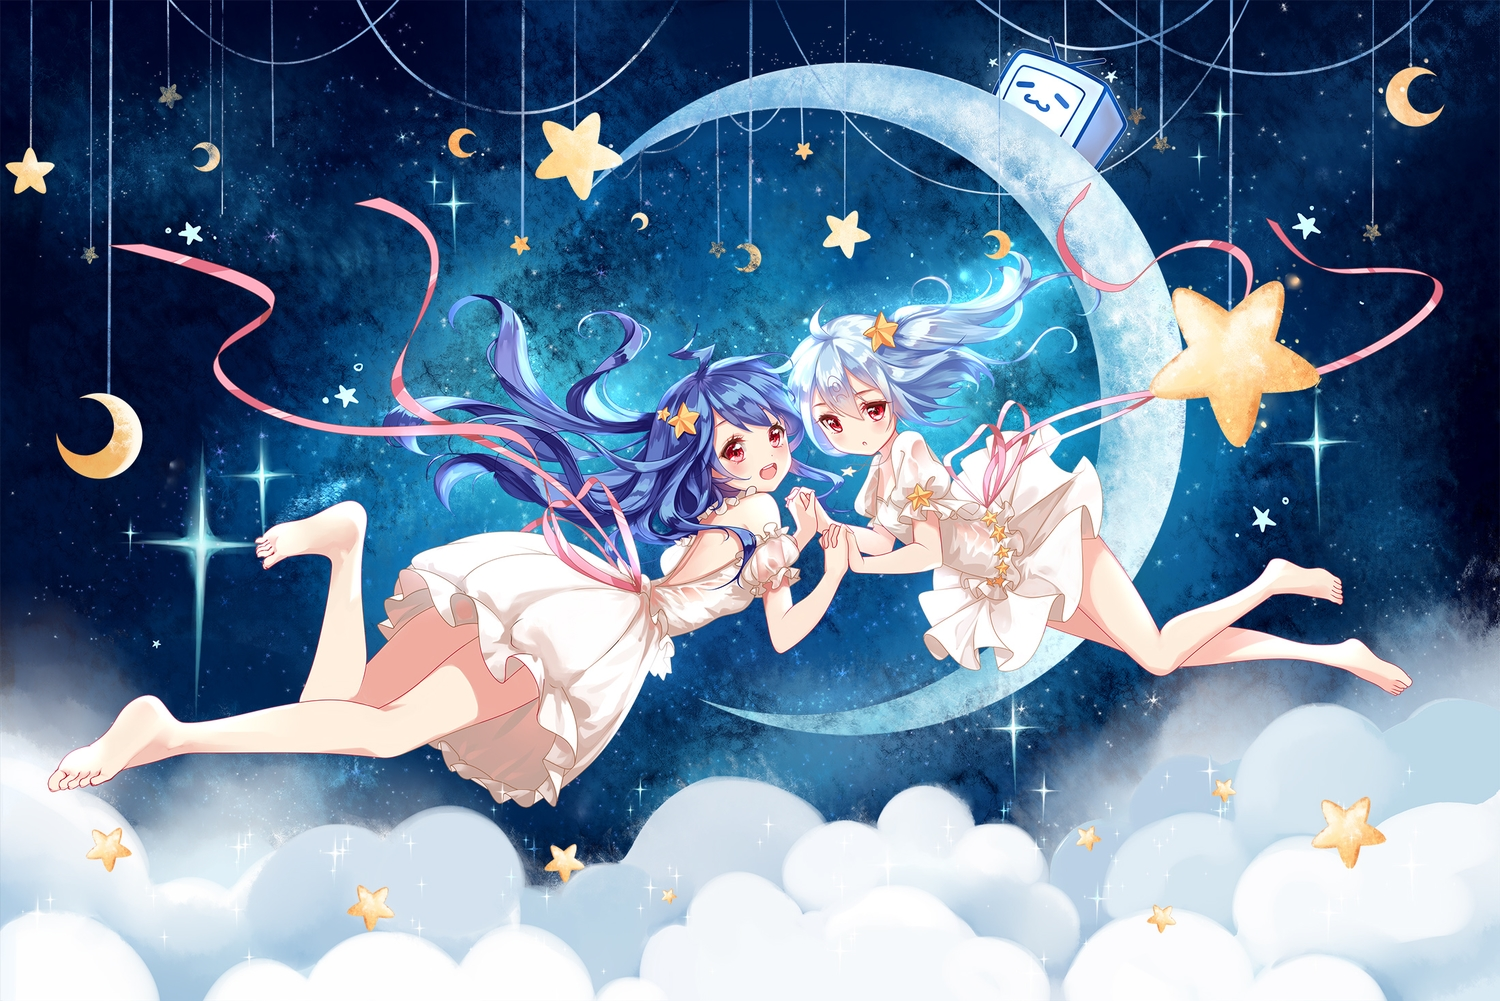 2girls barefoot bili_bili_douga bili_girl_22 bili_girl_33 clouble clouds dress long_hair moon ribbons stars